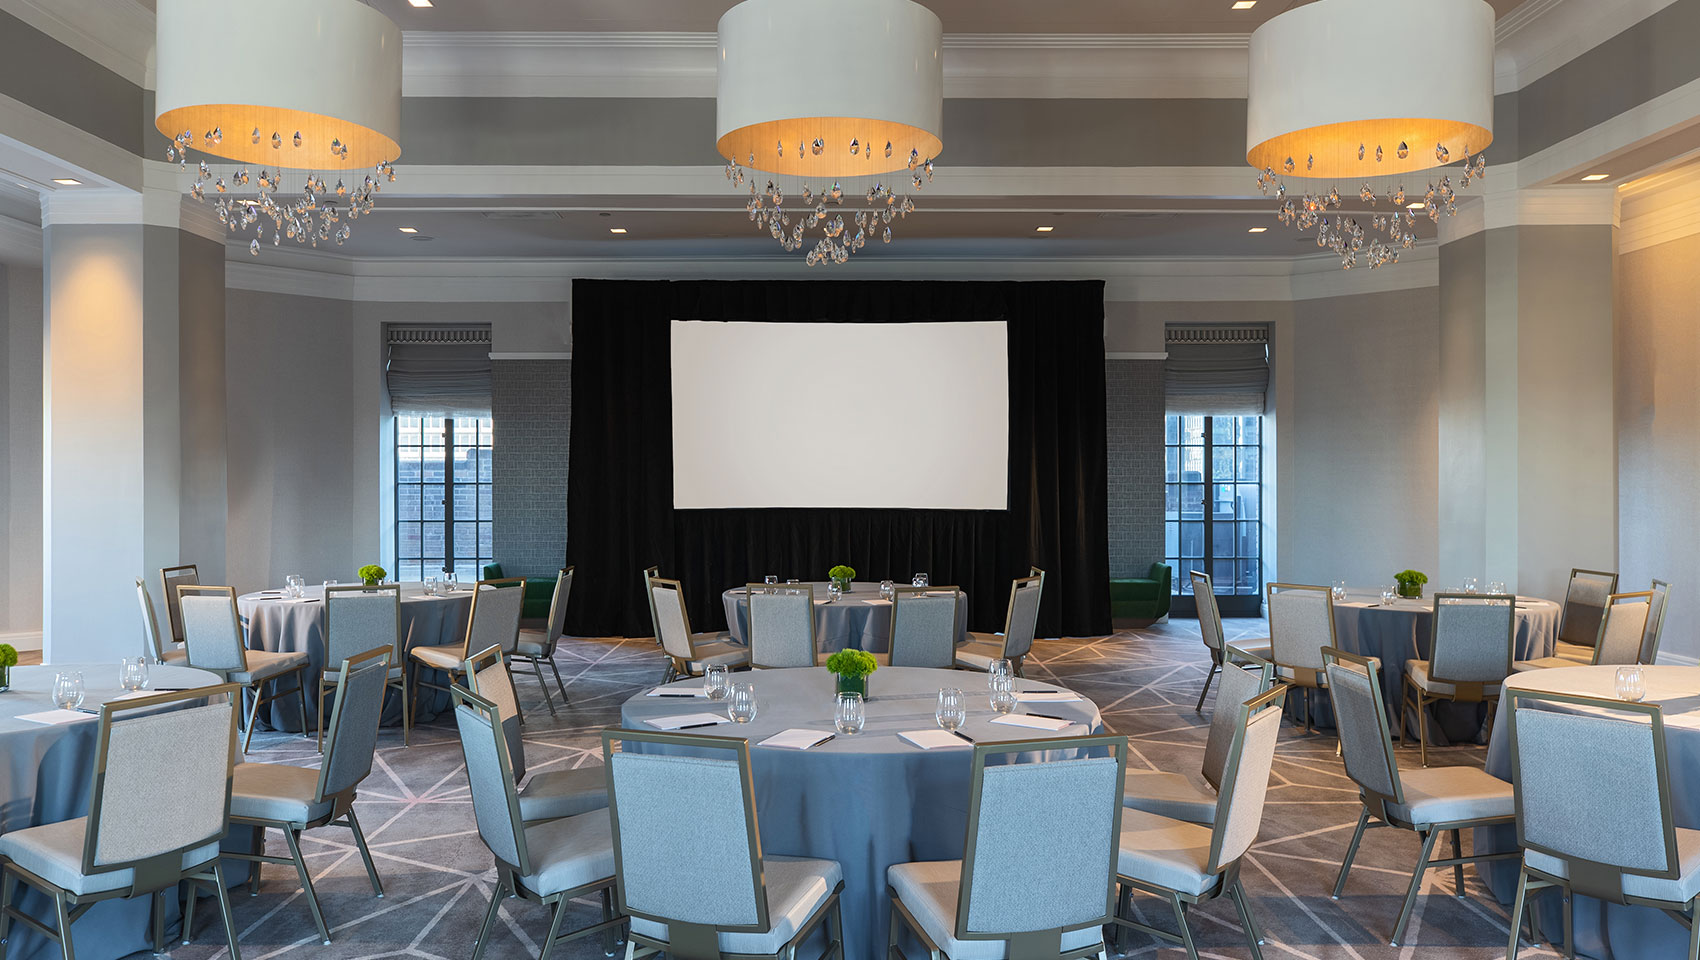 Kimpton Hotel Palomar Philadelphia ballroom with crescent round tables all situated behind a projector screen and underneath 3 identical, circular lighting fixtures